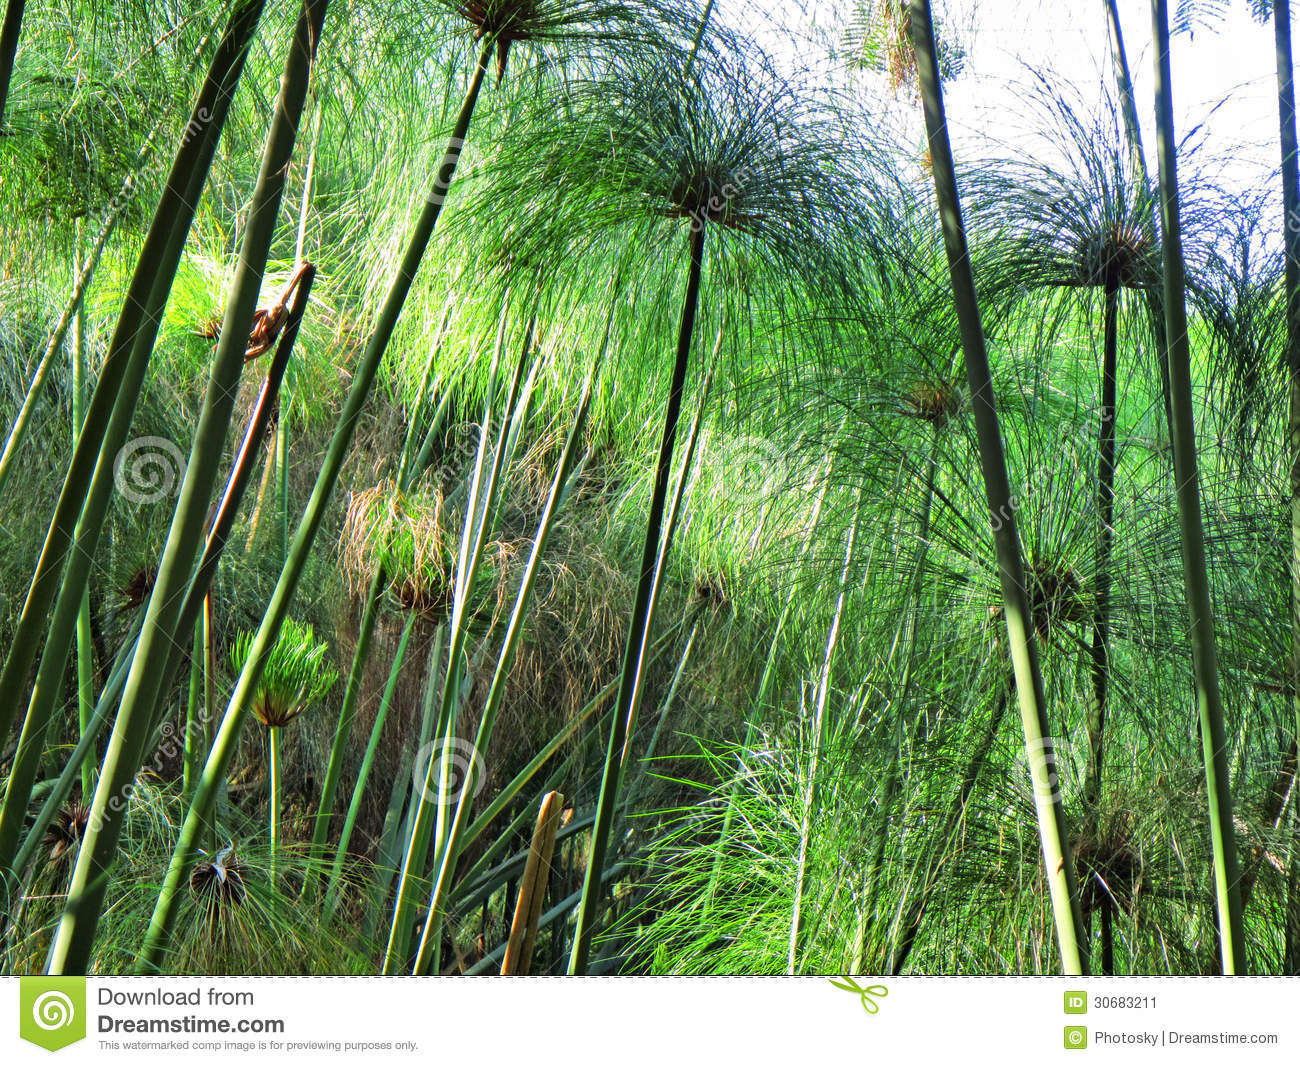 Garden reed like plants in sunset light stock image - Plantas de sol ...